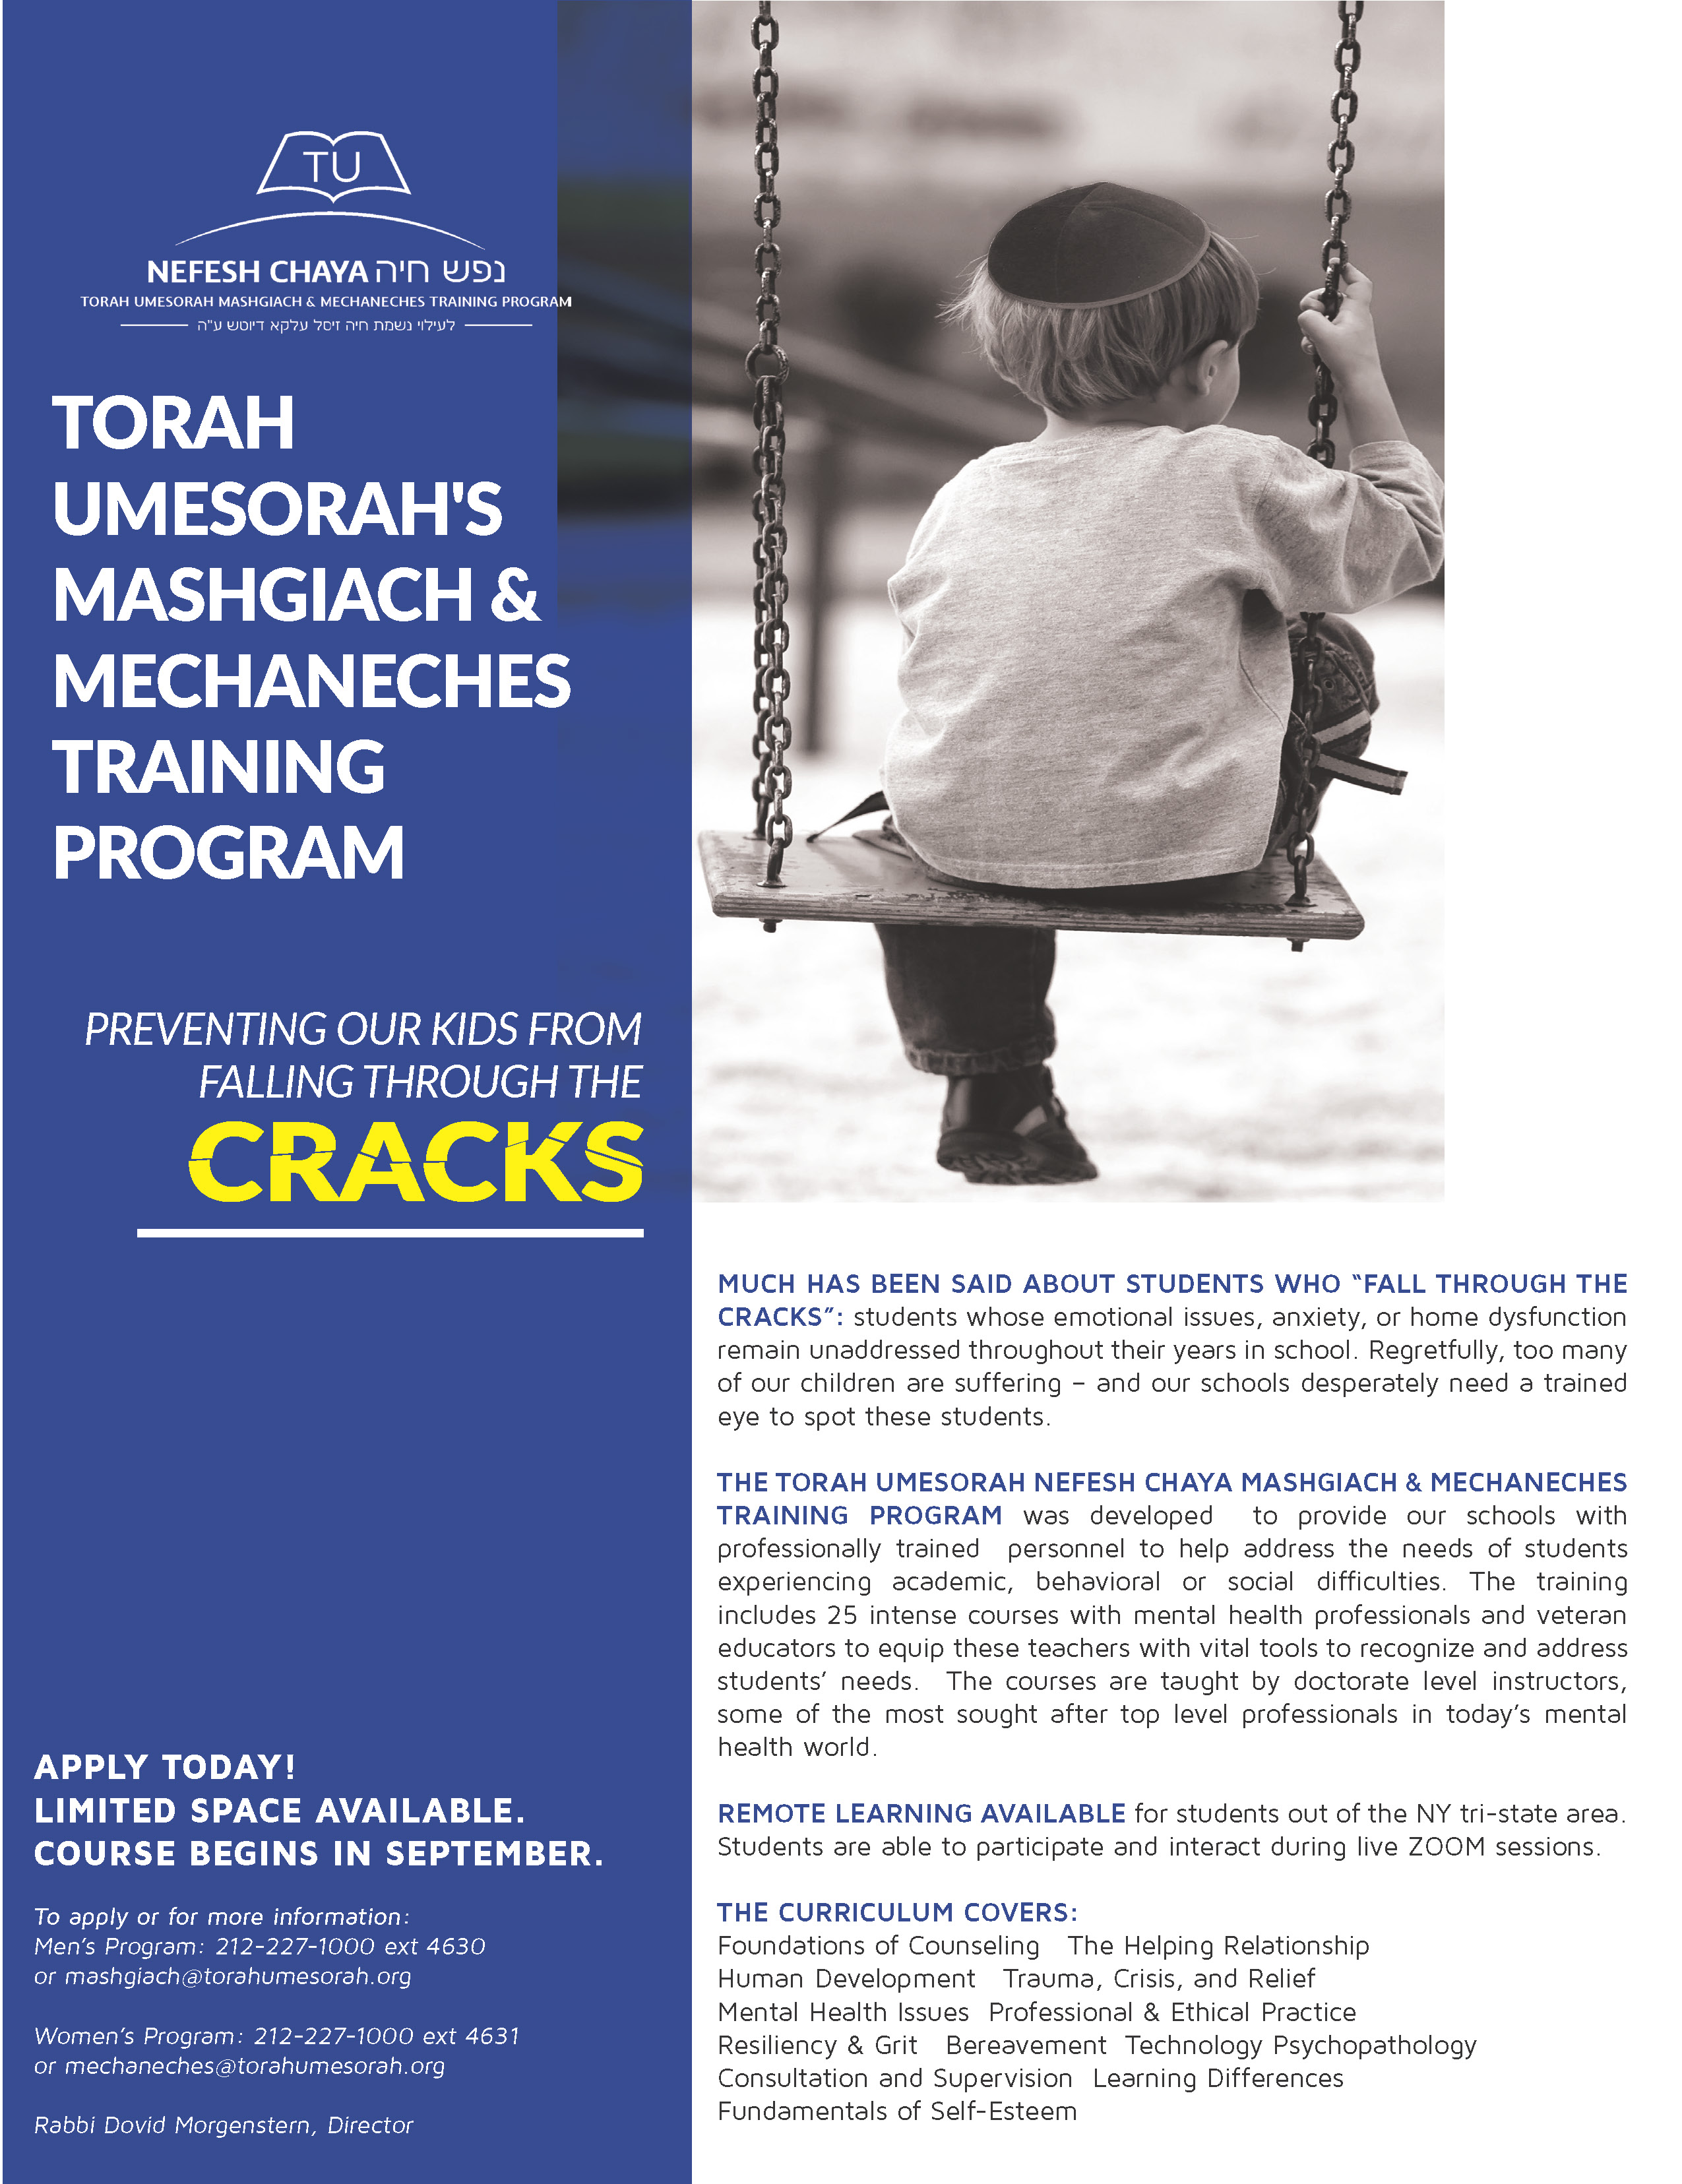 Nefesh Chaya Mashgiach & Mechaneches Training Program